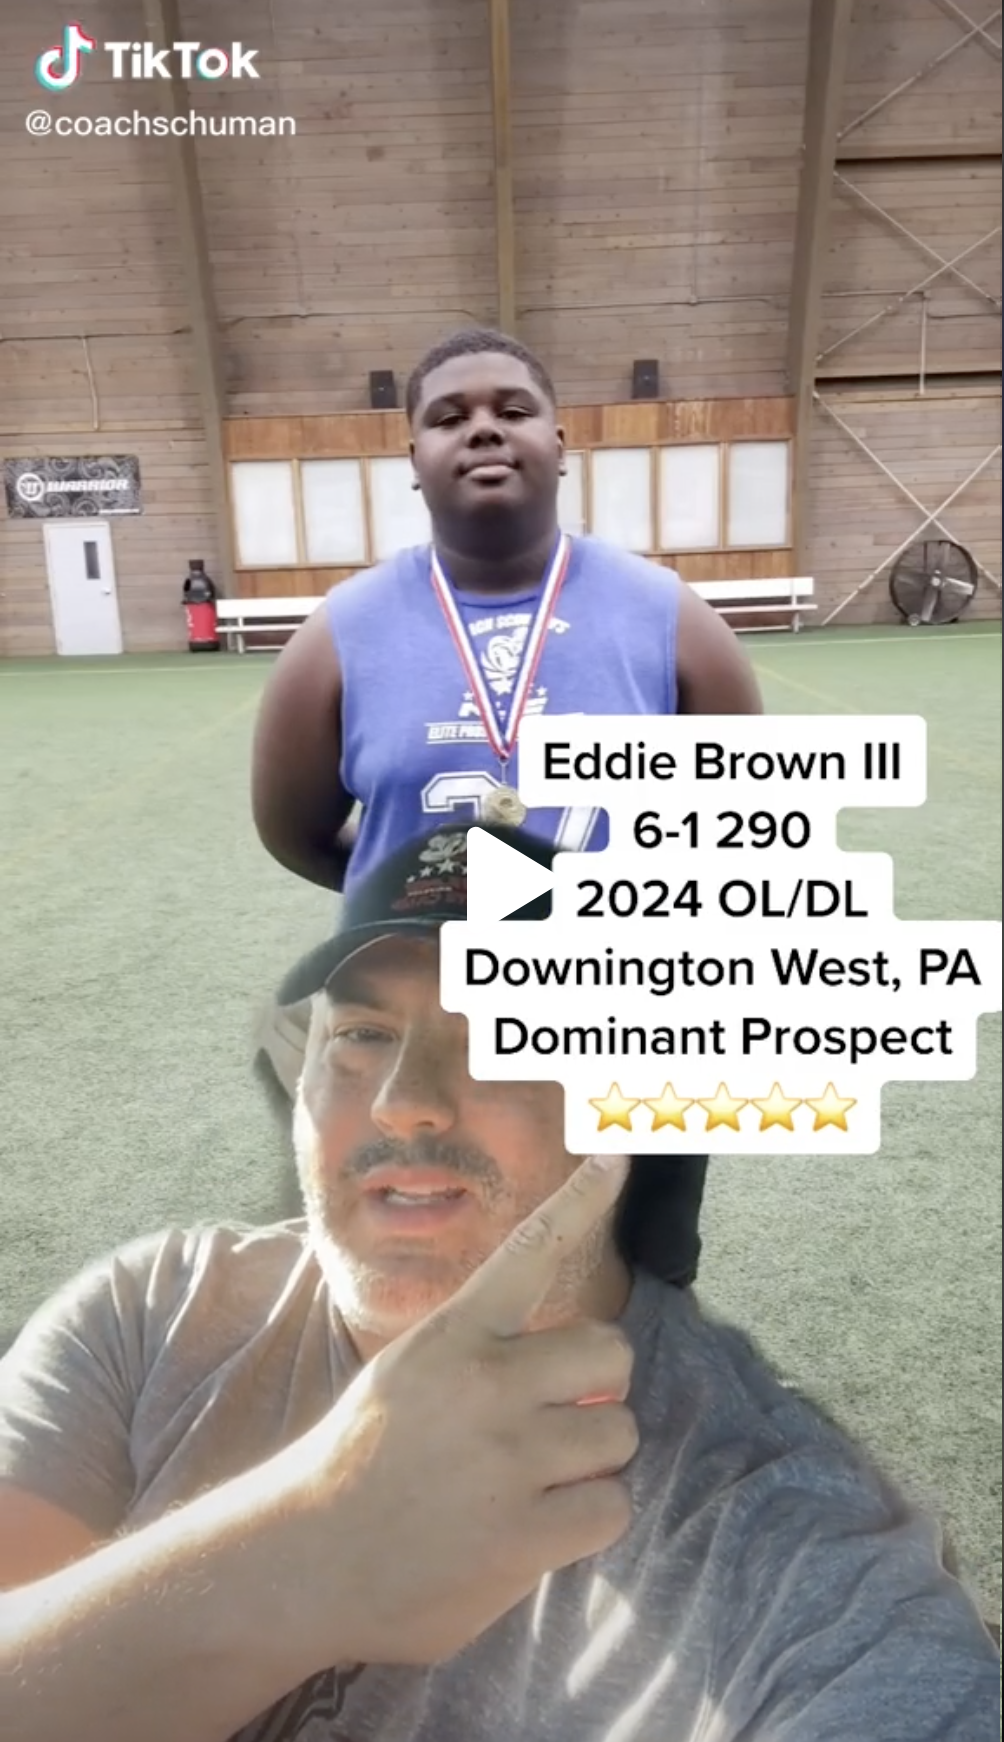 Tik Tok Video Made with Coach Schuman of You and Analyzing you as a player and posted to Tik Tok, Twiter, Instagram